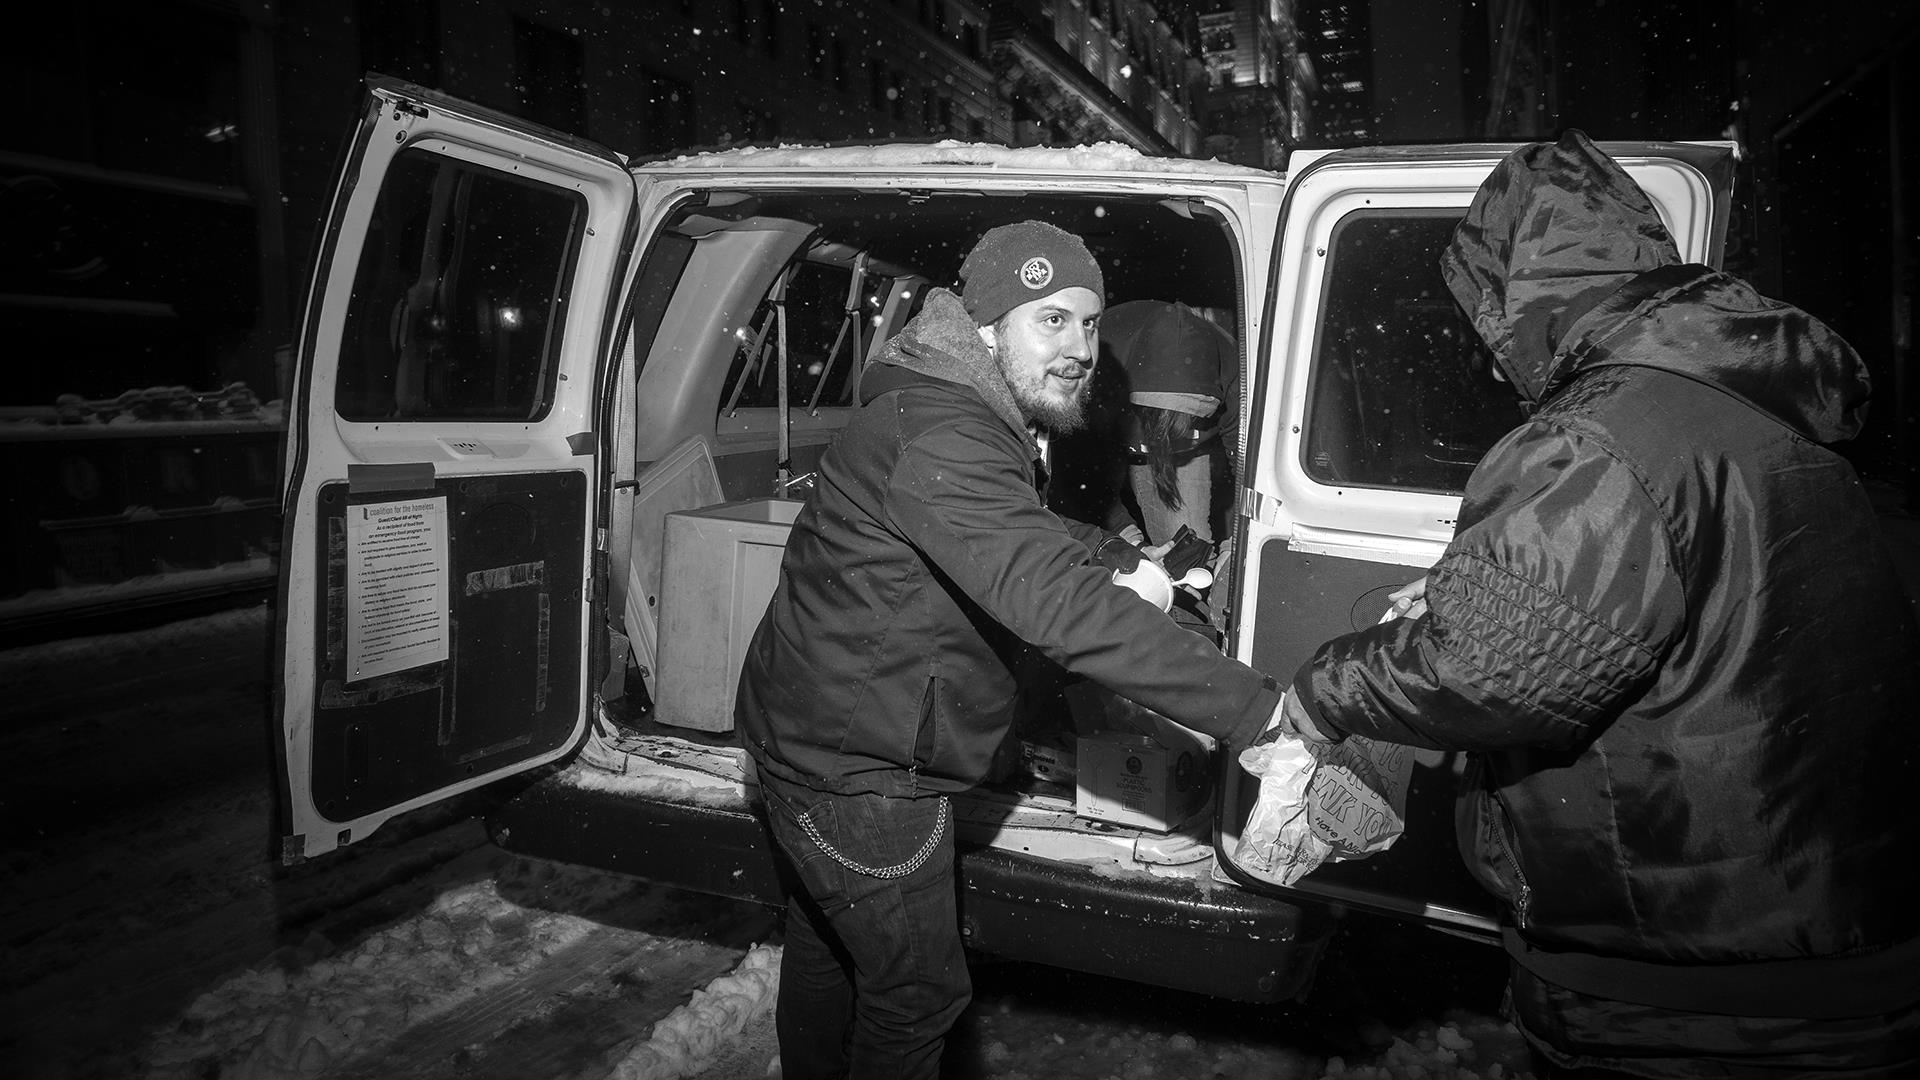 Working to feed the homeless during blizzard